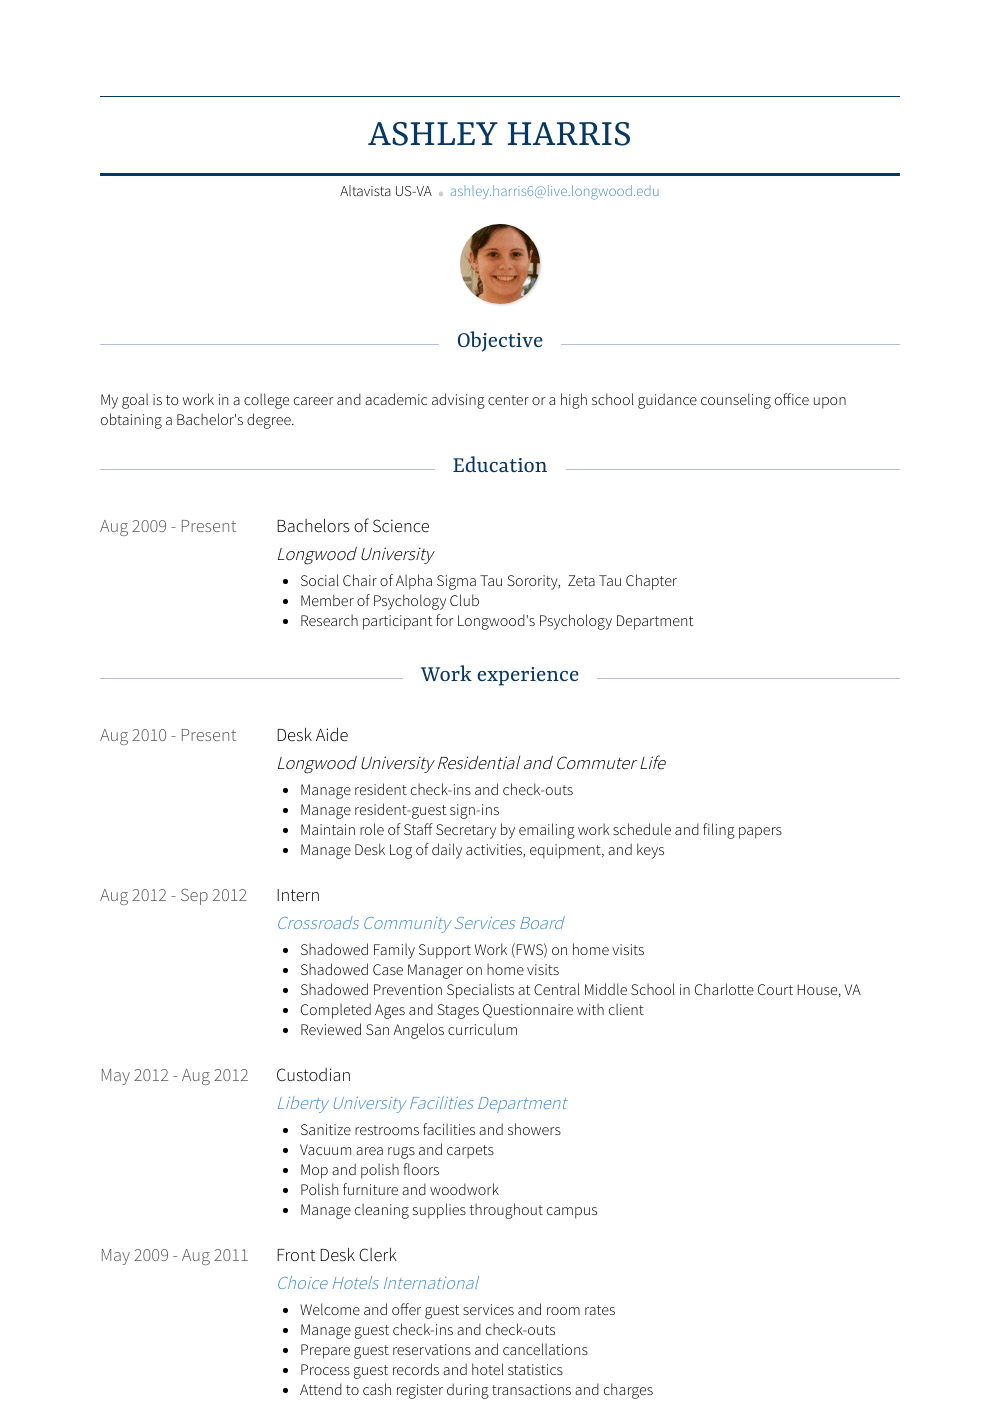 Desk Aide Resume Sample